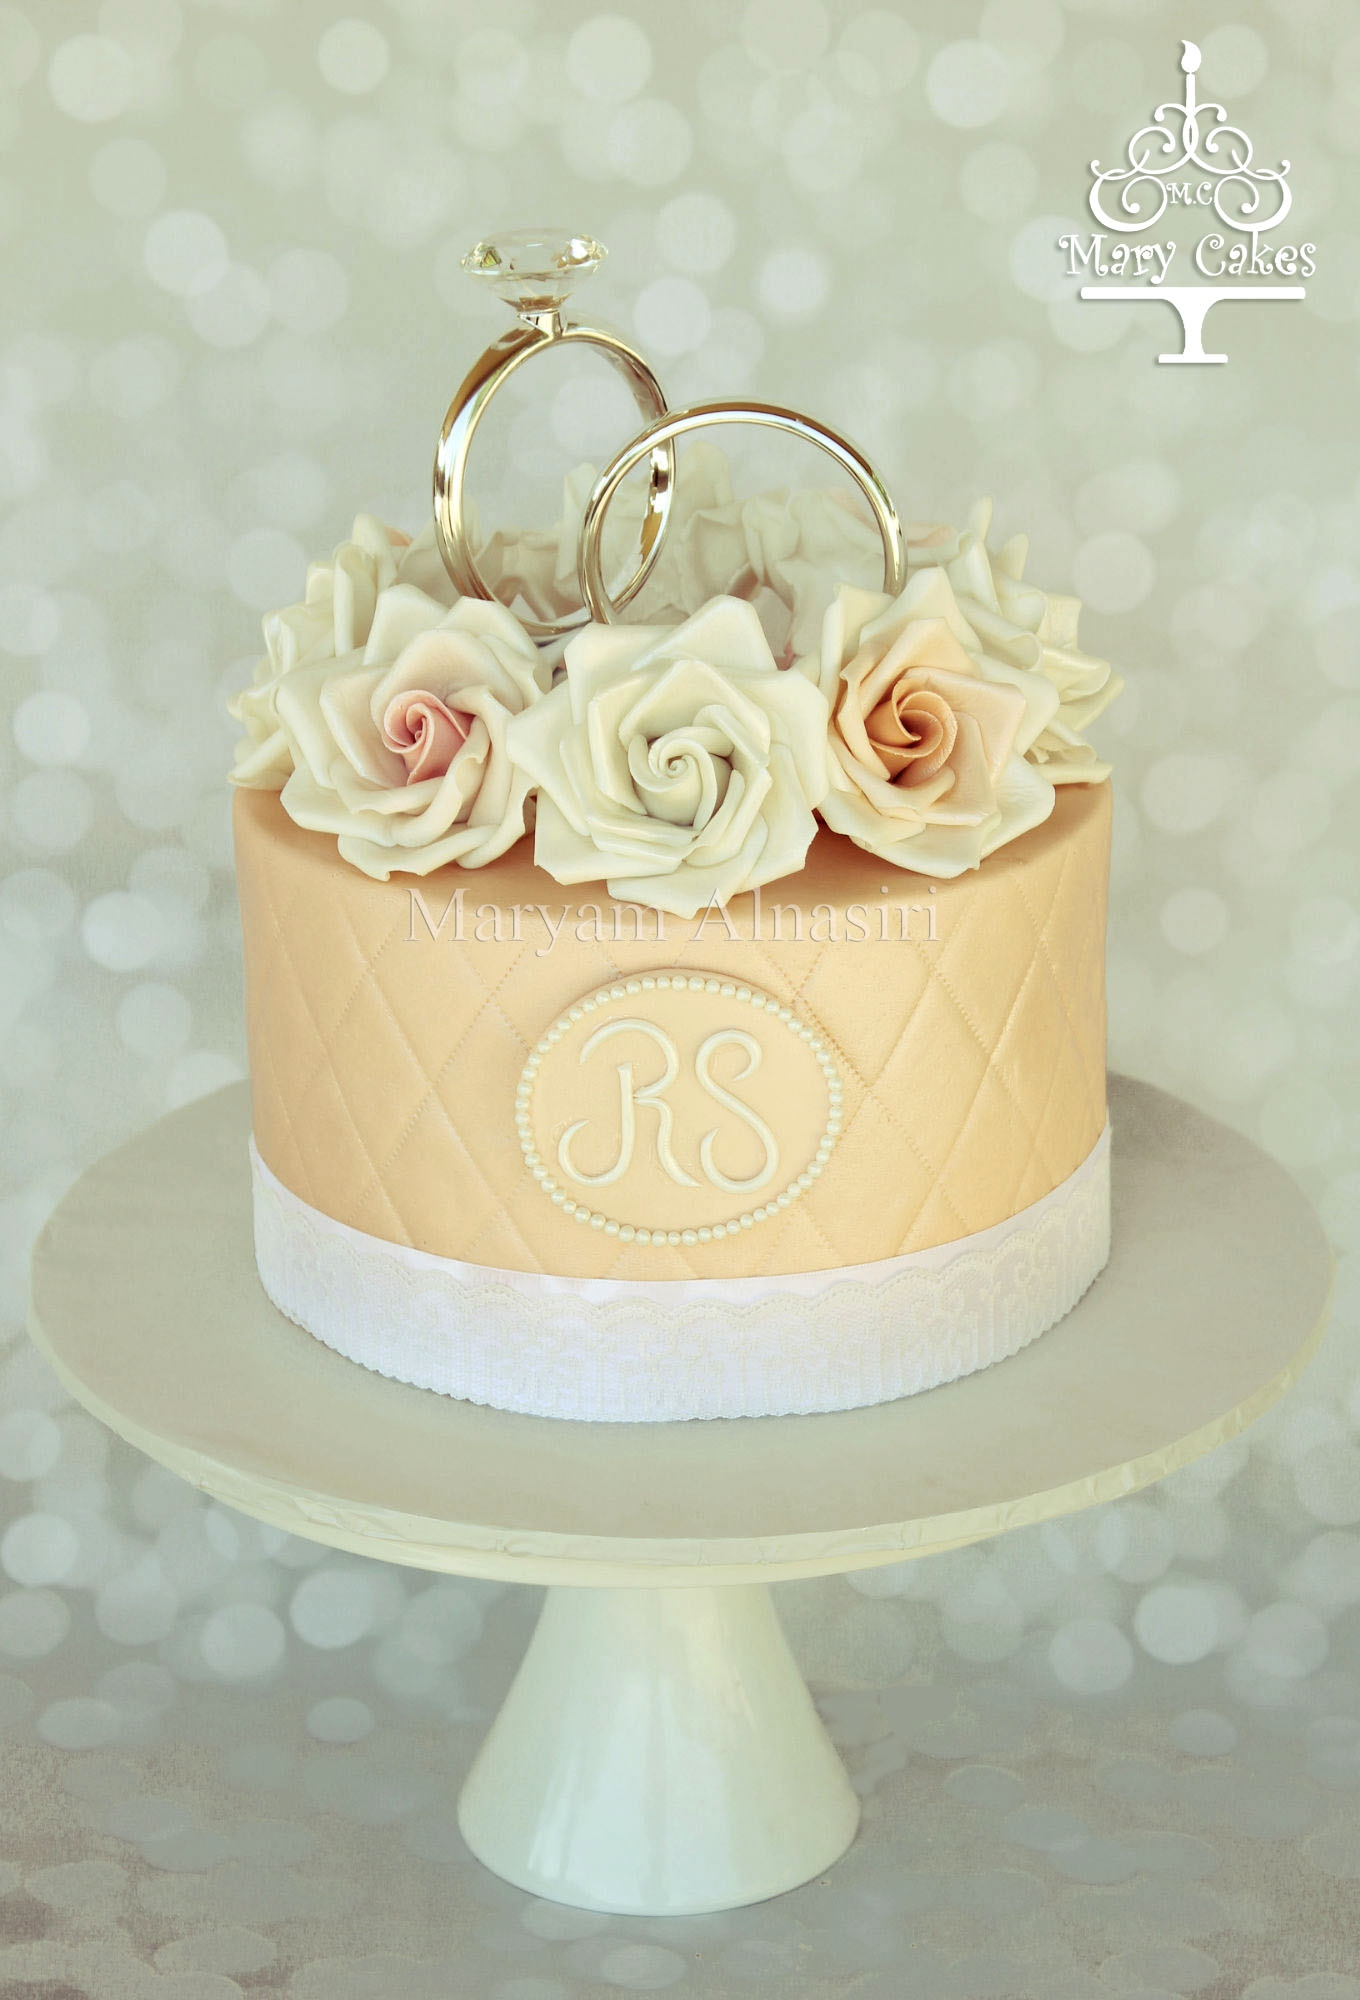 Designs Of Cakes For Engagement